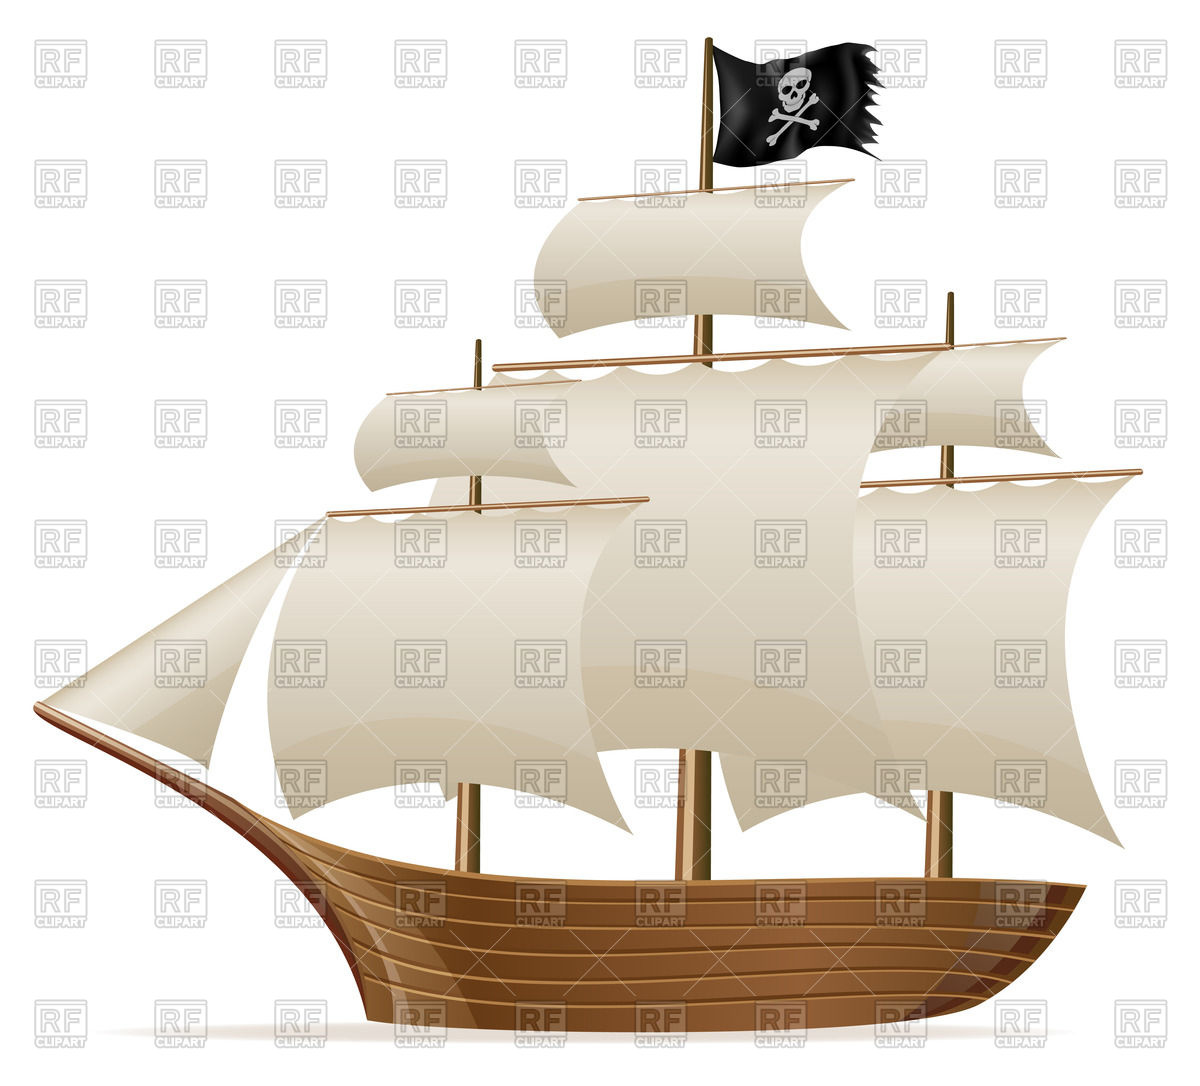 Pirate ship (side view) Vector Image #64911.